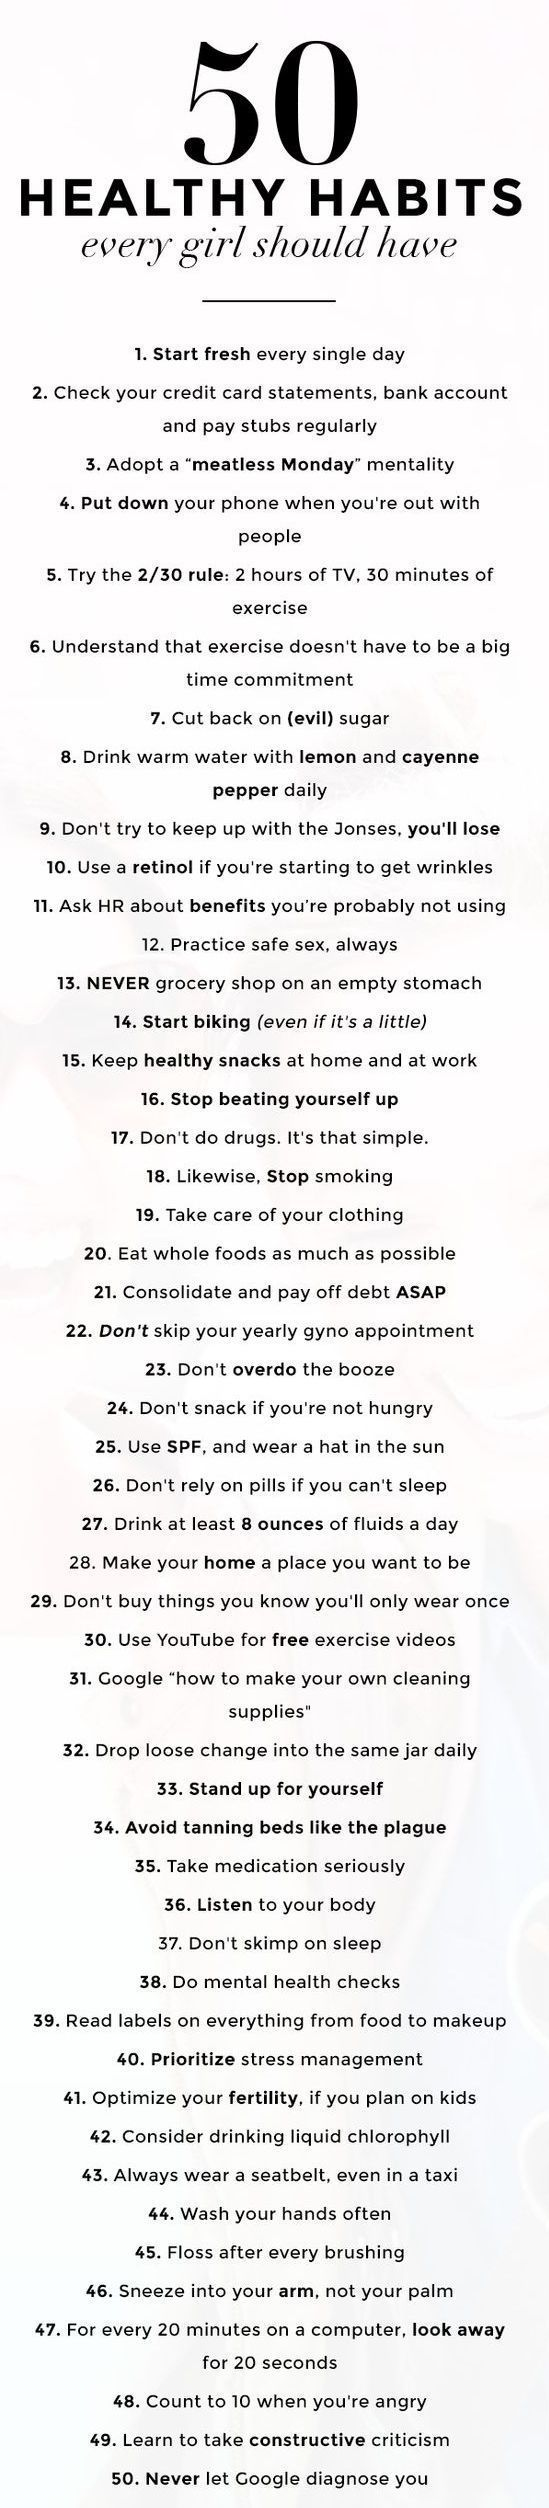 50 Healthy Habits (every girl should have) - Wallpaper & Scissors